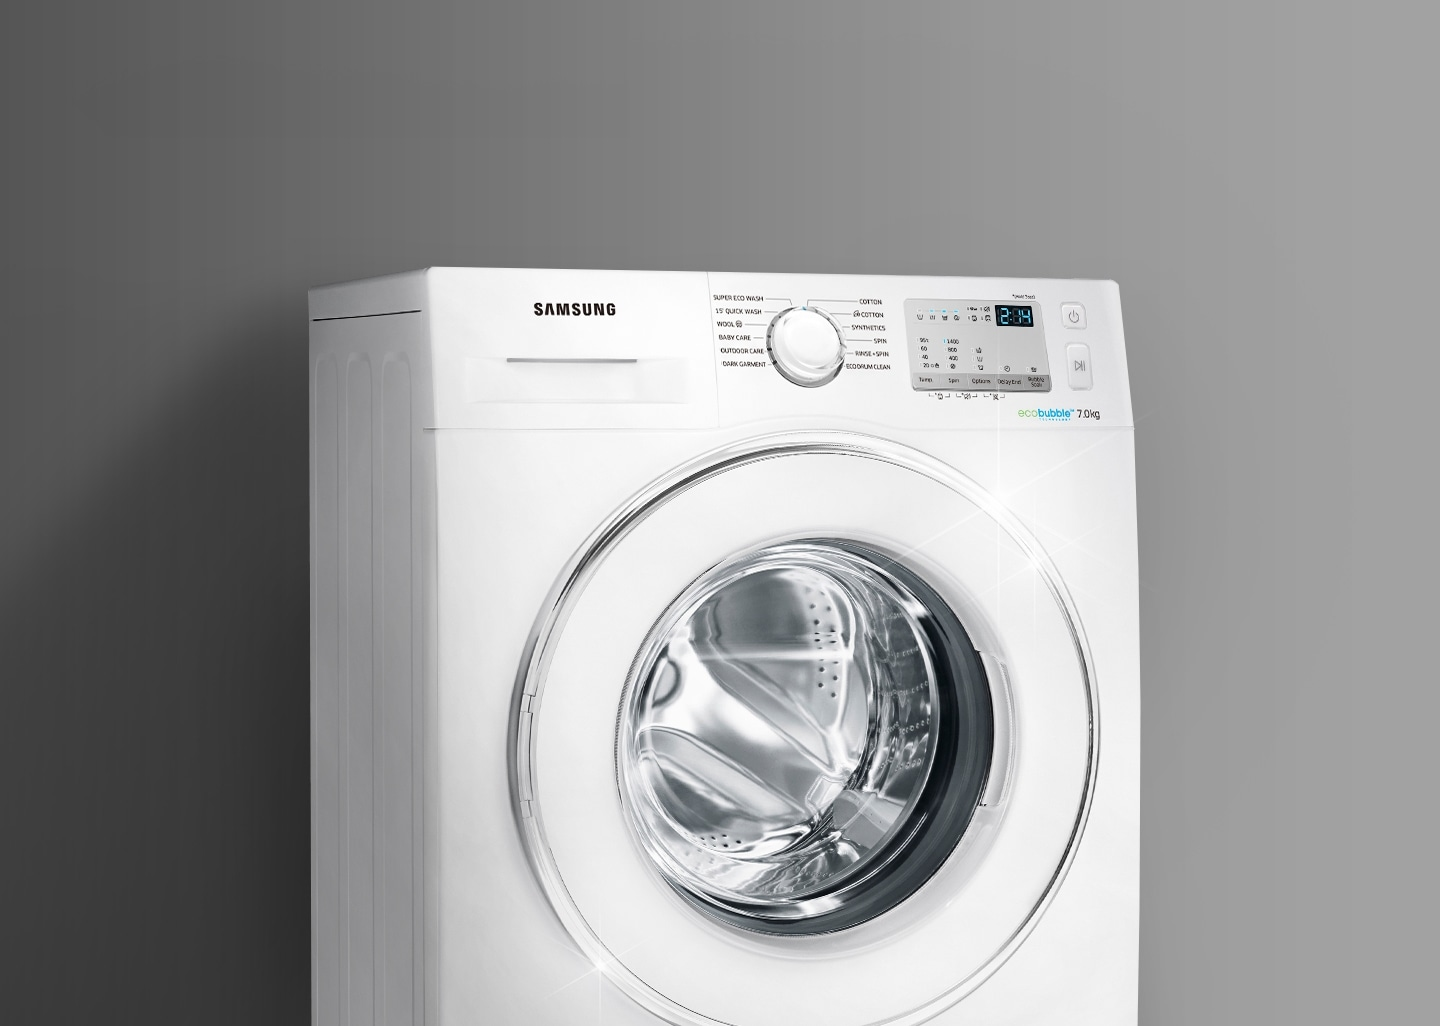 Samsung Front Load Washer 7kg Digit End 6 19 2019 12 35 Pm